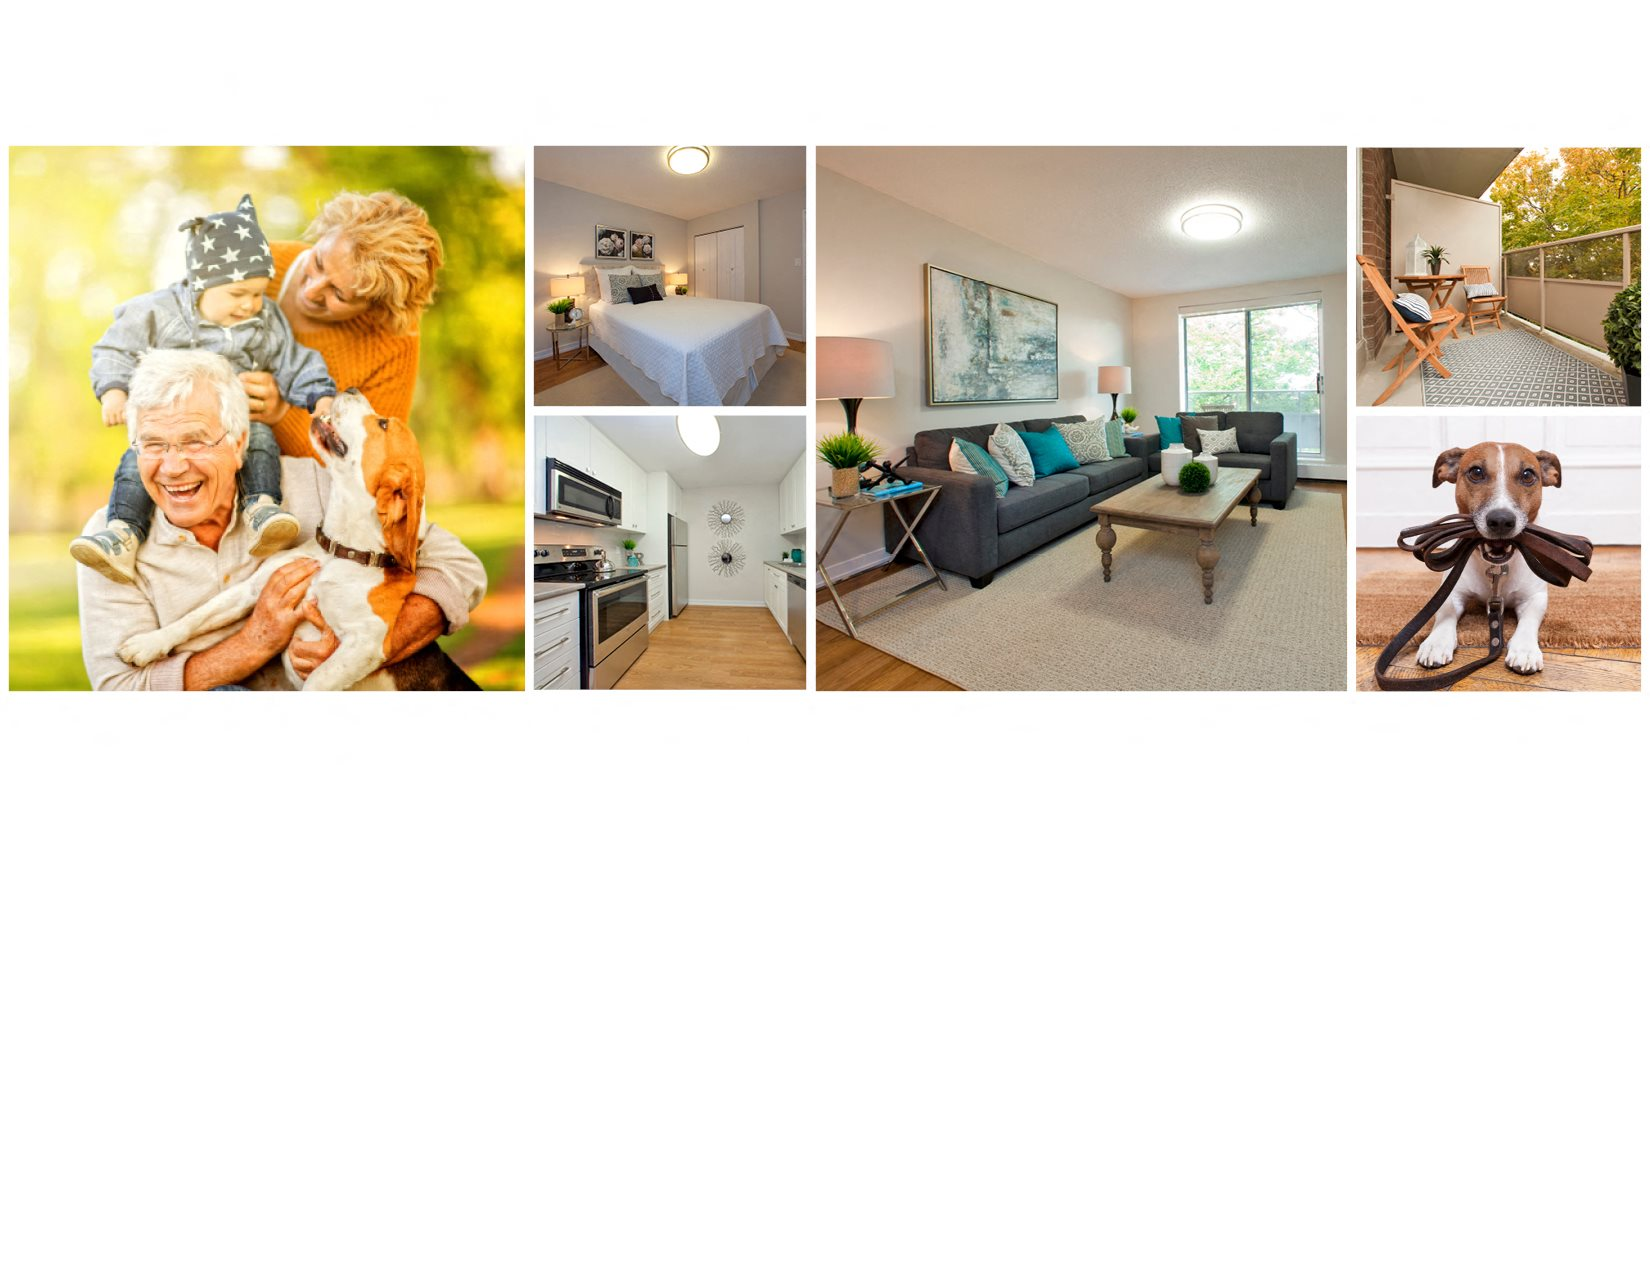 Collage of interior, exterior, and lifestyle images at Dorchester Apartments in Niagara Falls, ON